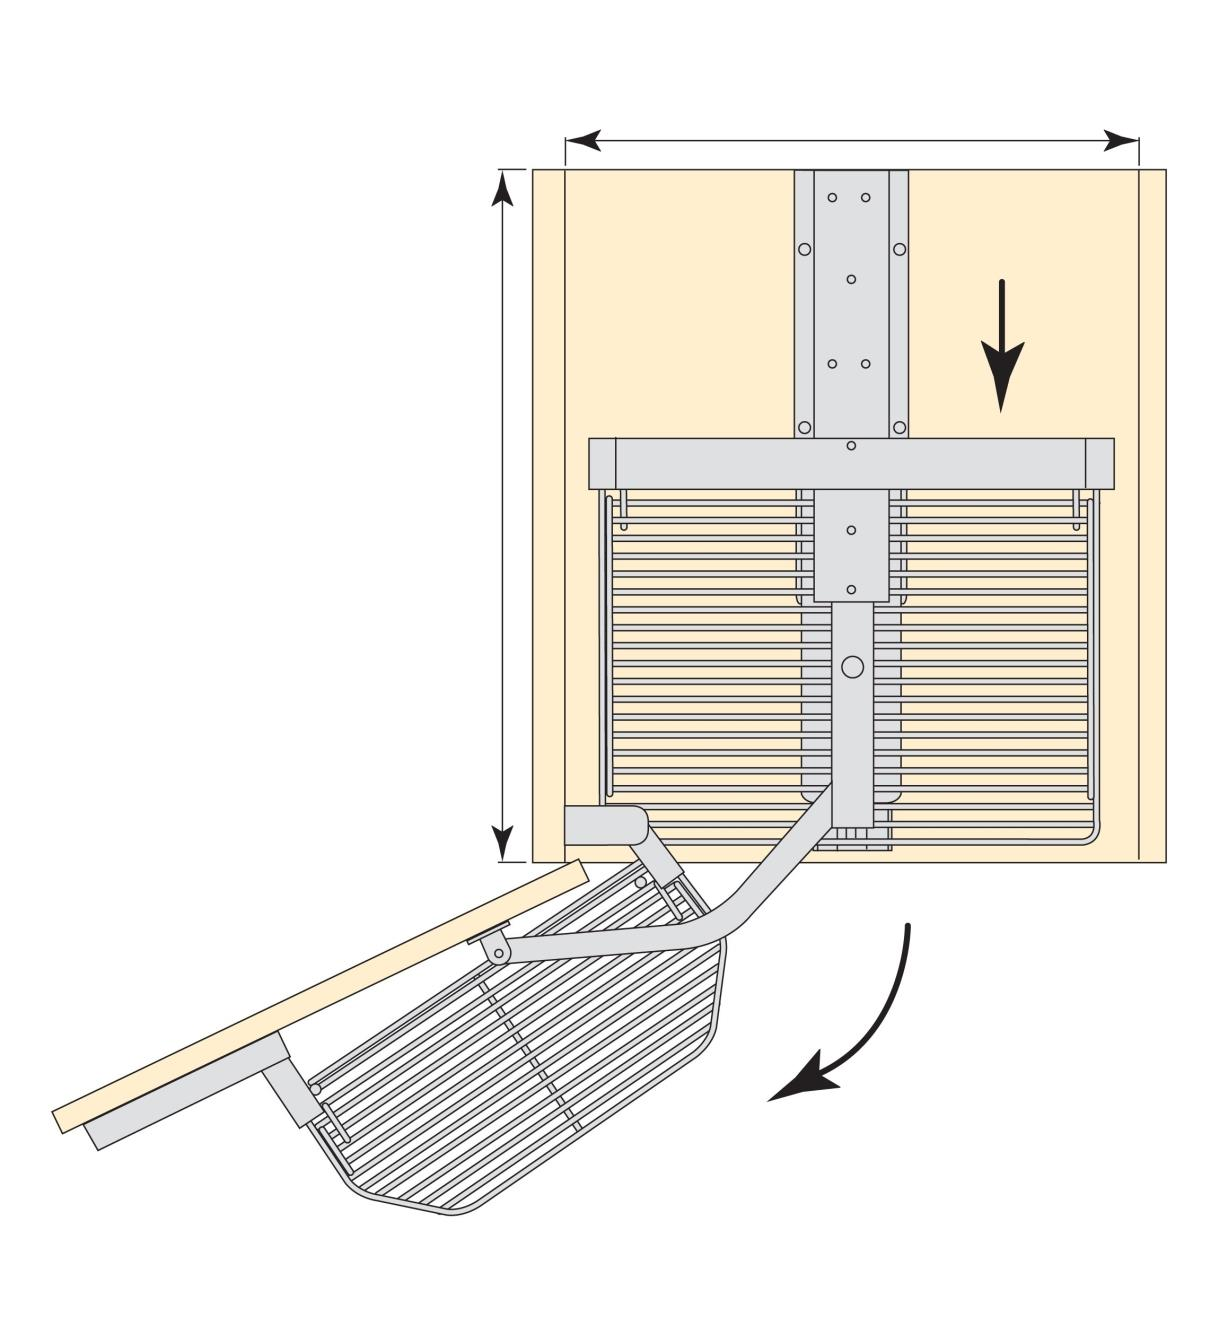 Top-view diagram of installed larger unit, with the cupboard door opening and the rear shelves sliding forward